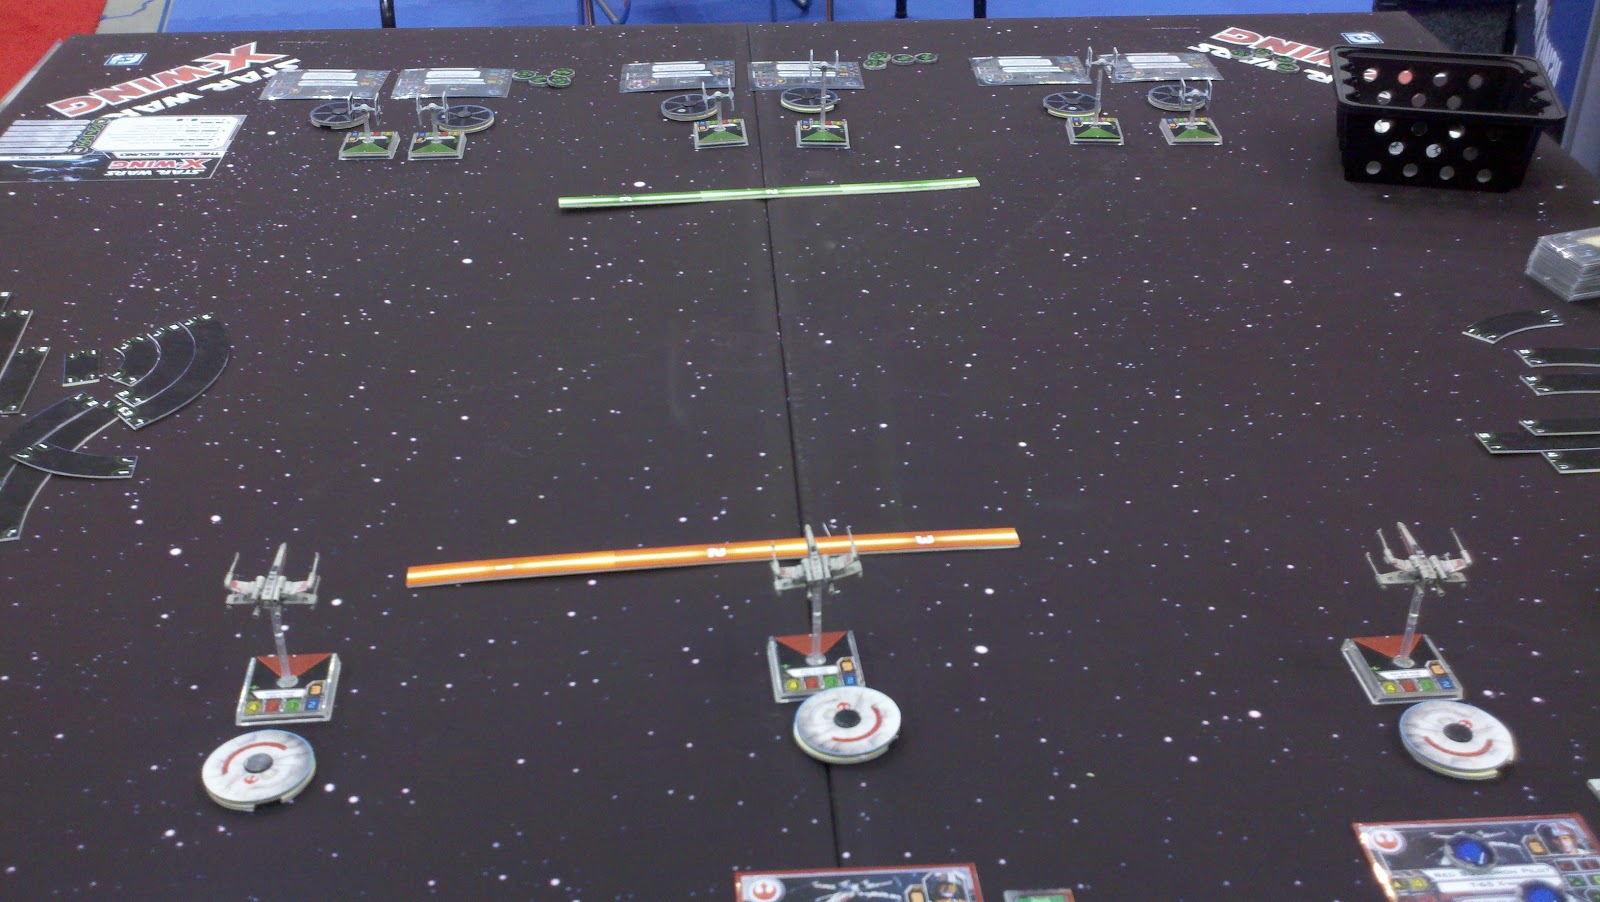 X Wing Game The Hopeless Gamer: Ju...